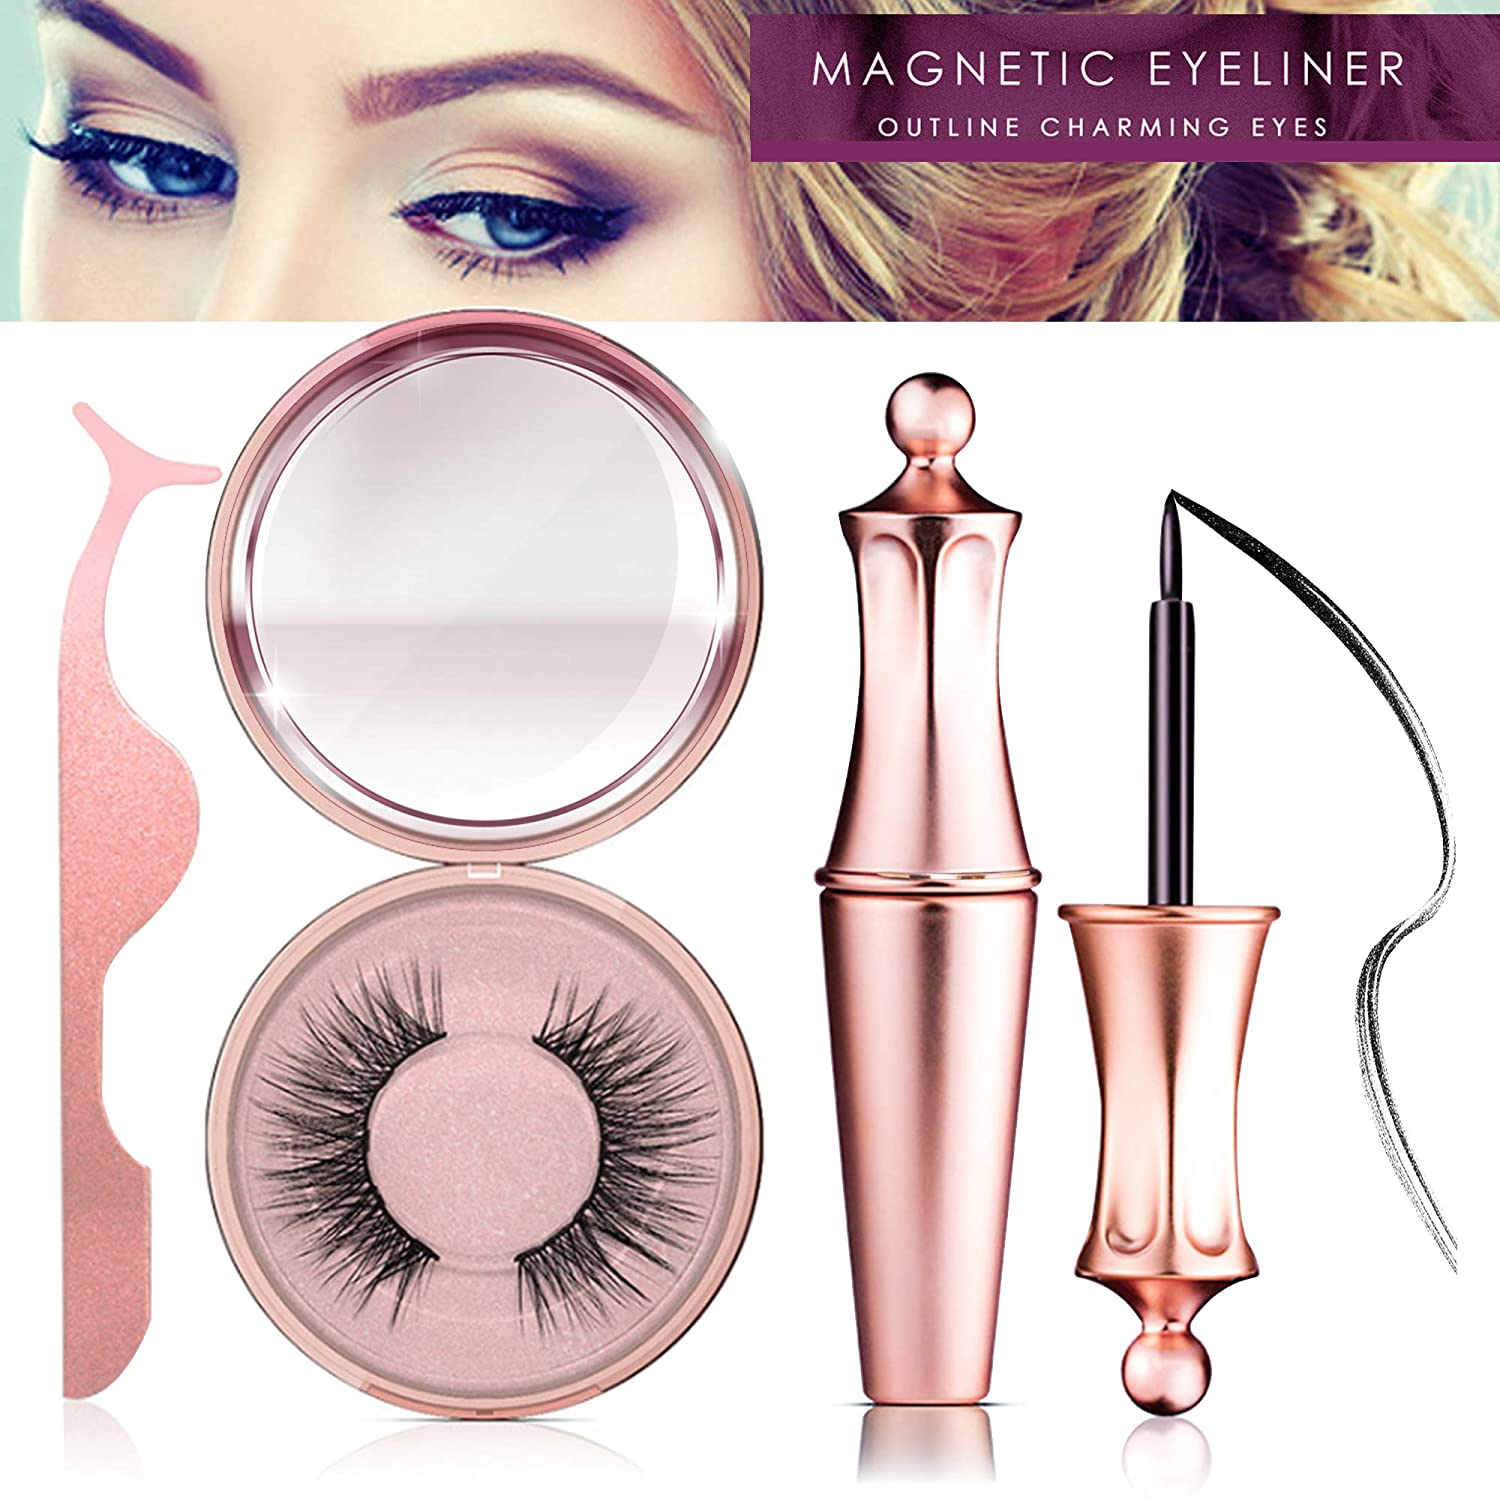 84aa1e3ccab Amazon.com : Magnetic Eyeliner Kit, Magnetic Eyeliner With Magnetic  Eyelashes, Magnetic Lashliner For Use with Magnetic False Lashes (PI) :  Beauty